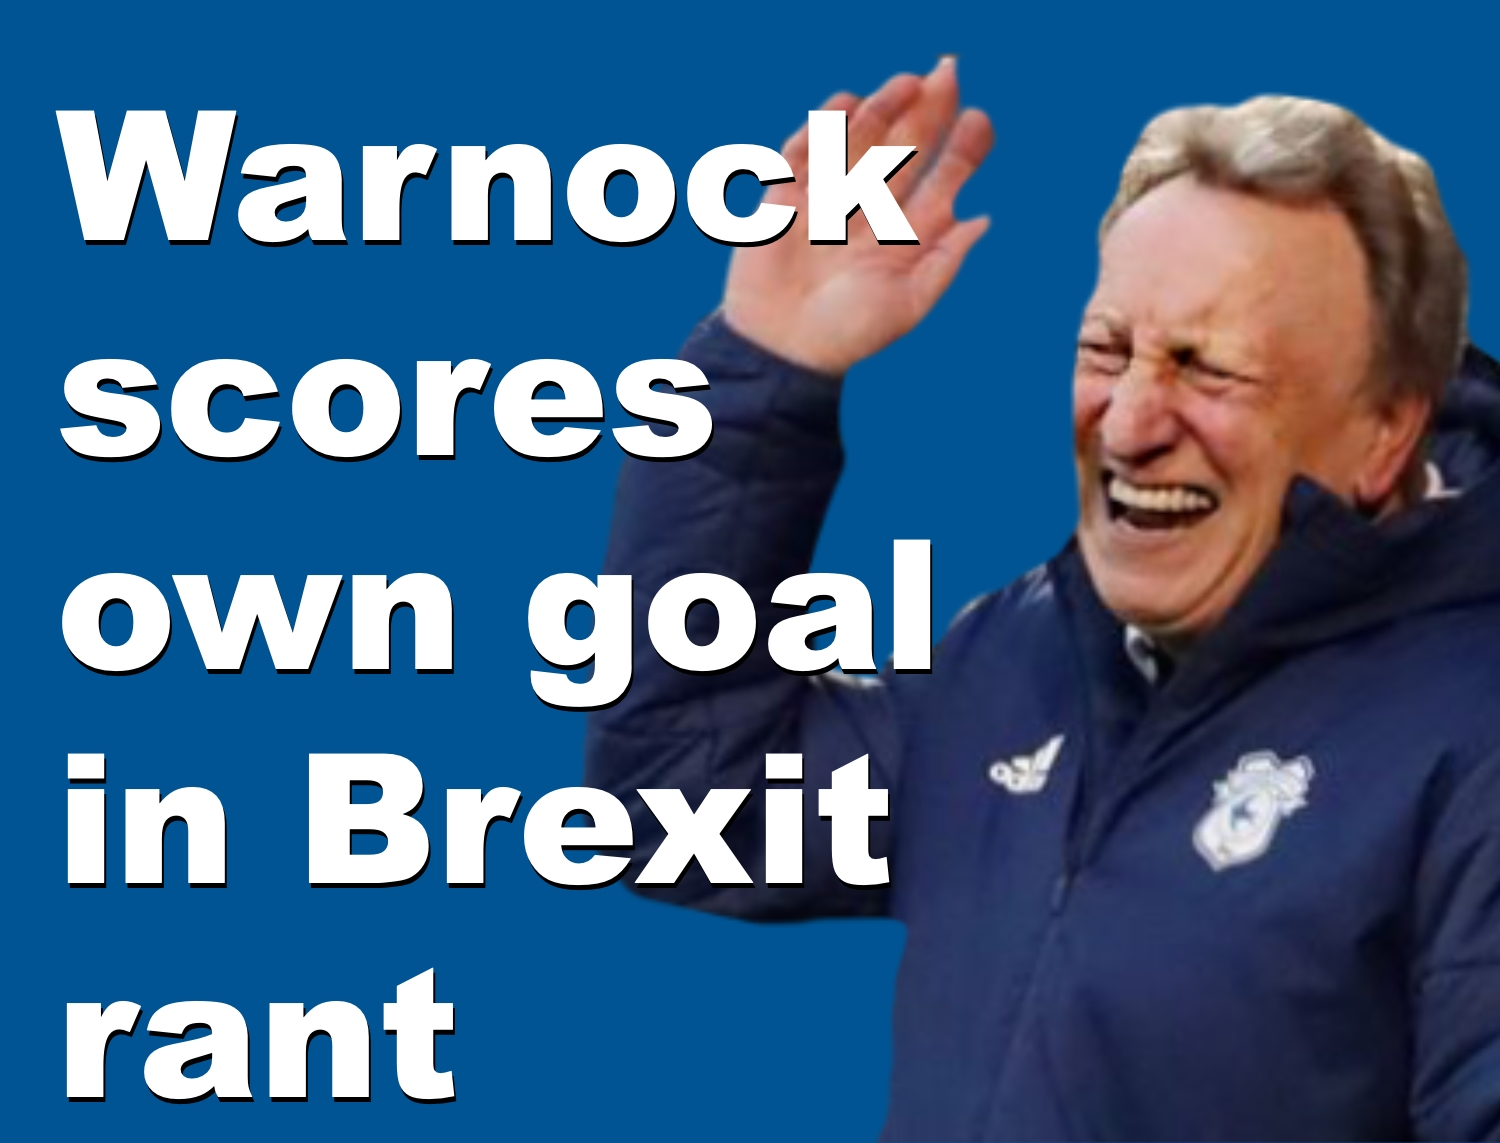 Former Sheffield United boss Neil Warnock scores own goal in Brexit rant